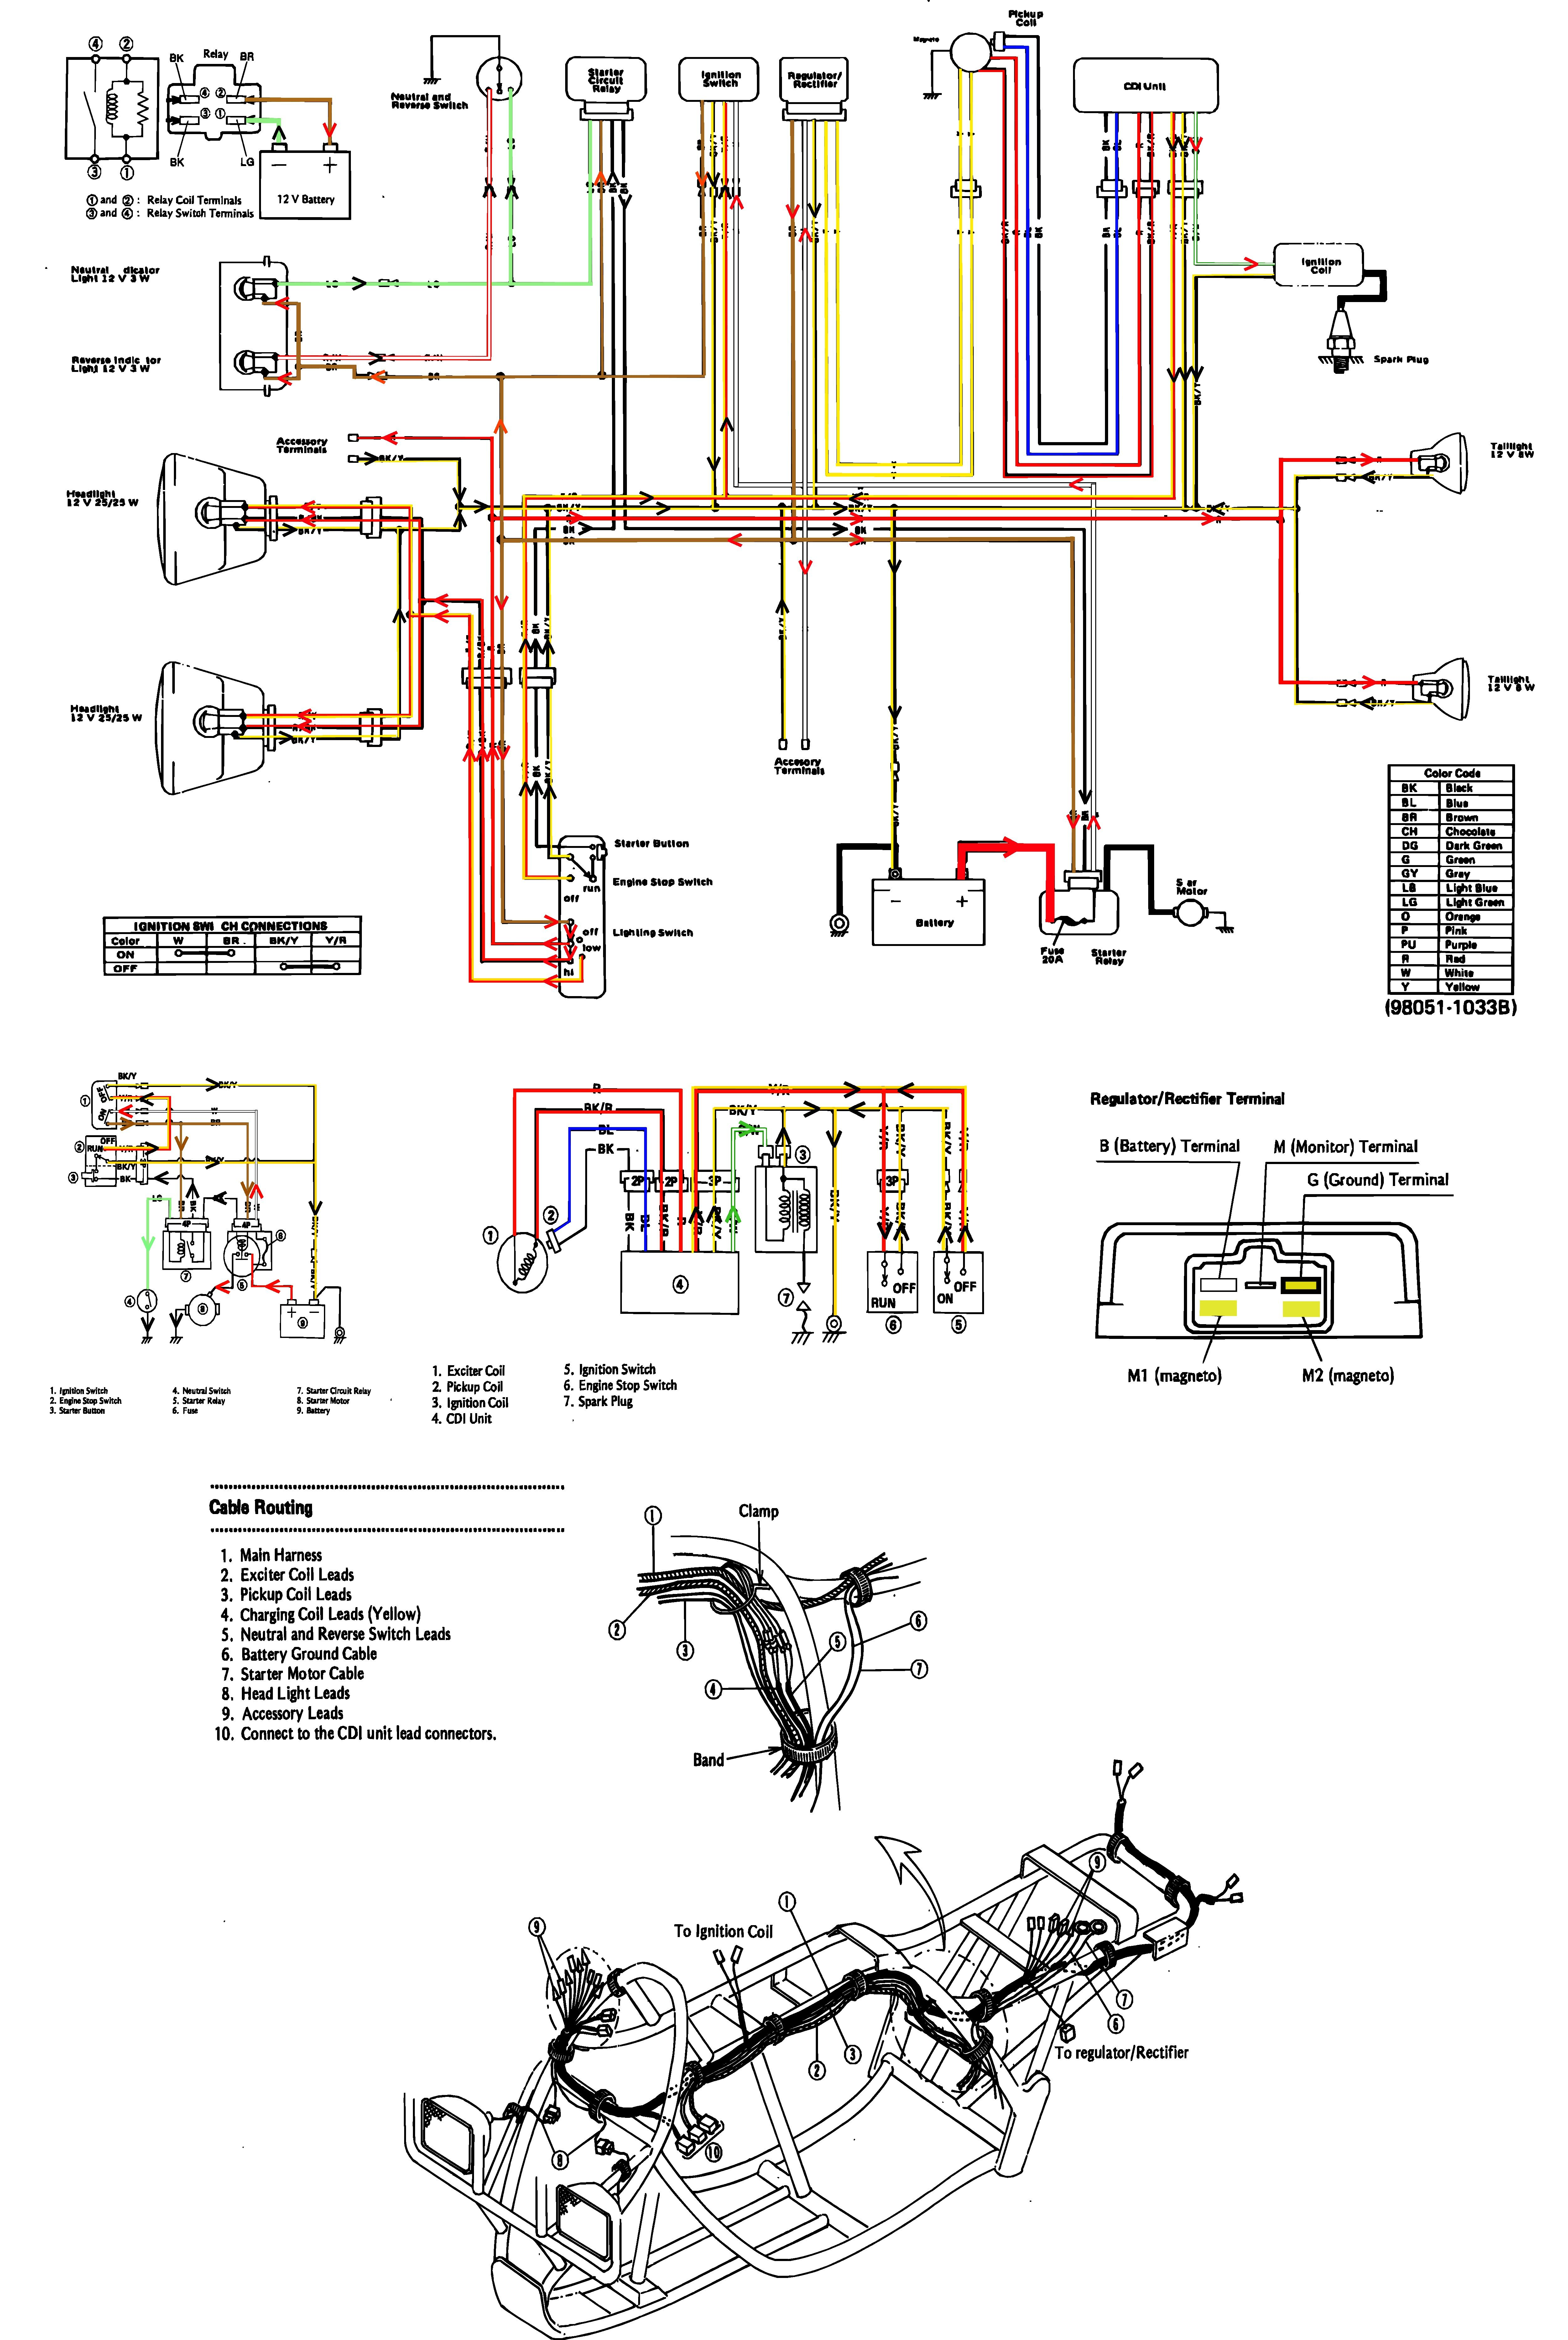 ground cover, battery diagram, ground water pump, fuel system diagram, control diagram, fuel pump diagram, alternator diagram, fuse box diagram, on 4 ground wiring diagram